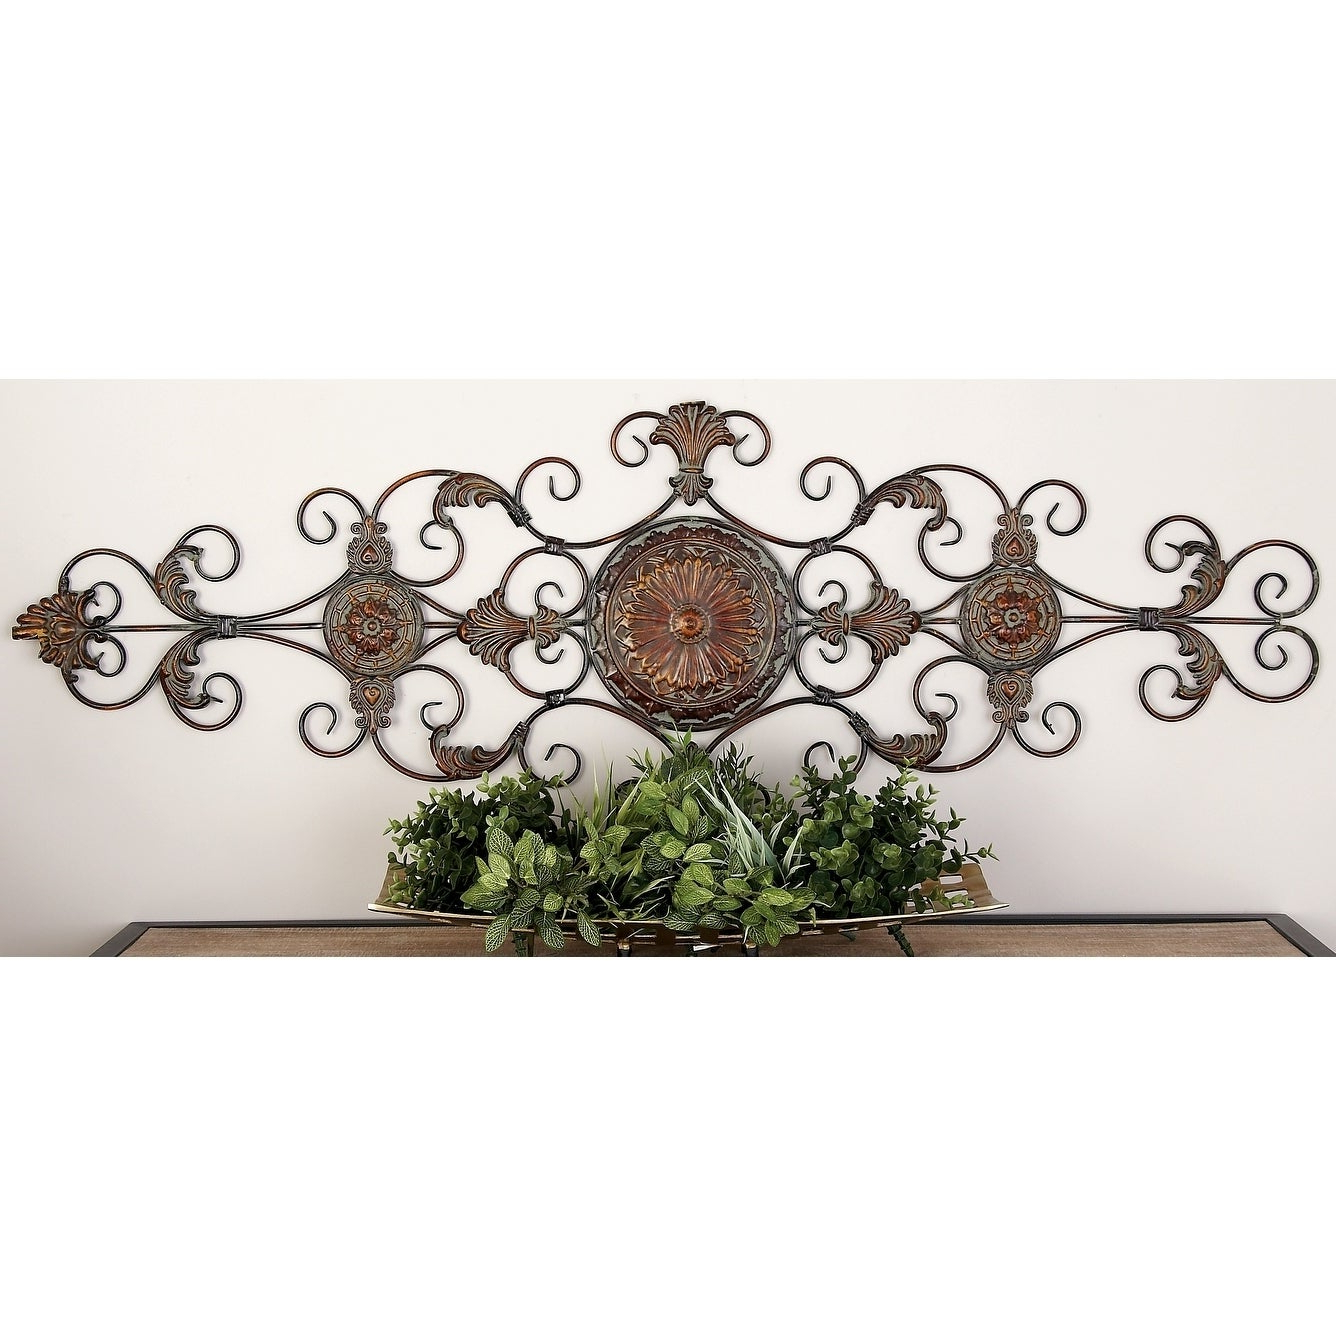 Shop Traditional 55 Inch Scroll And Acanthus Leaf Wall Decor Regarding Most Current Scroll Leaf Wall Decor (Gallery 5 of 20)